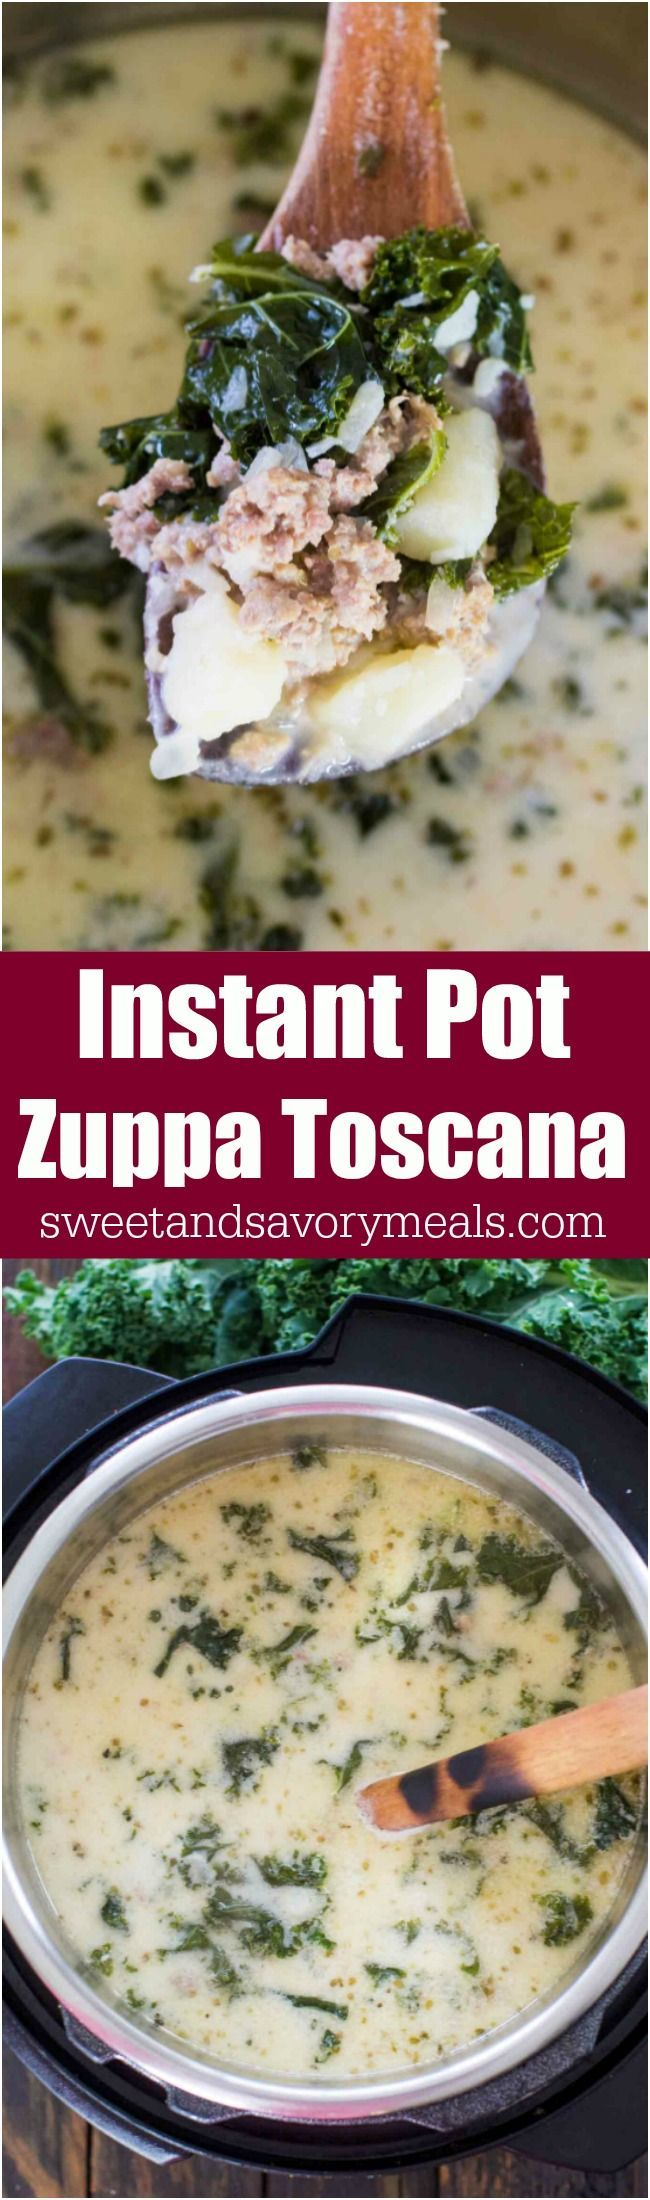 Instant Pot Zuppa Toscana is the Olive Garden Copycat easily made in the Instant Pot in just 40 minutes with budget friendly ingredients. #instantpot #olivegarden #soup #pressurecooking #copycat